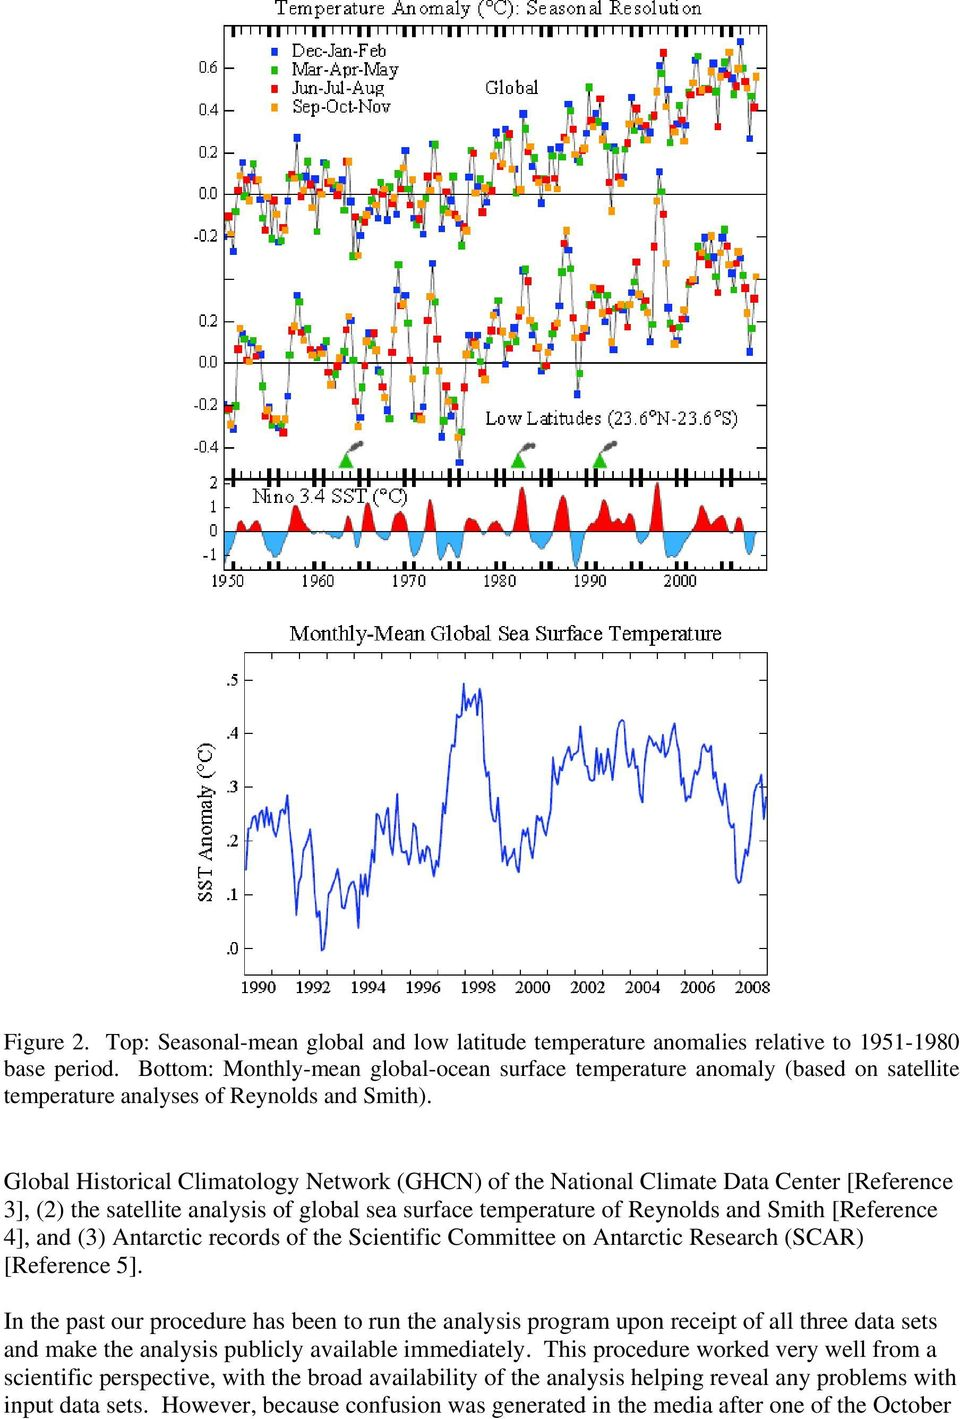 Global Historical Climatology Network (GHCN) of the National Climate Data Center [Reference 3], (2) the satellite analysis of global sea surface temperature of Reynolds and Smith [Reference 4], and